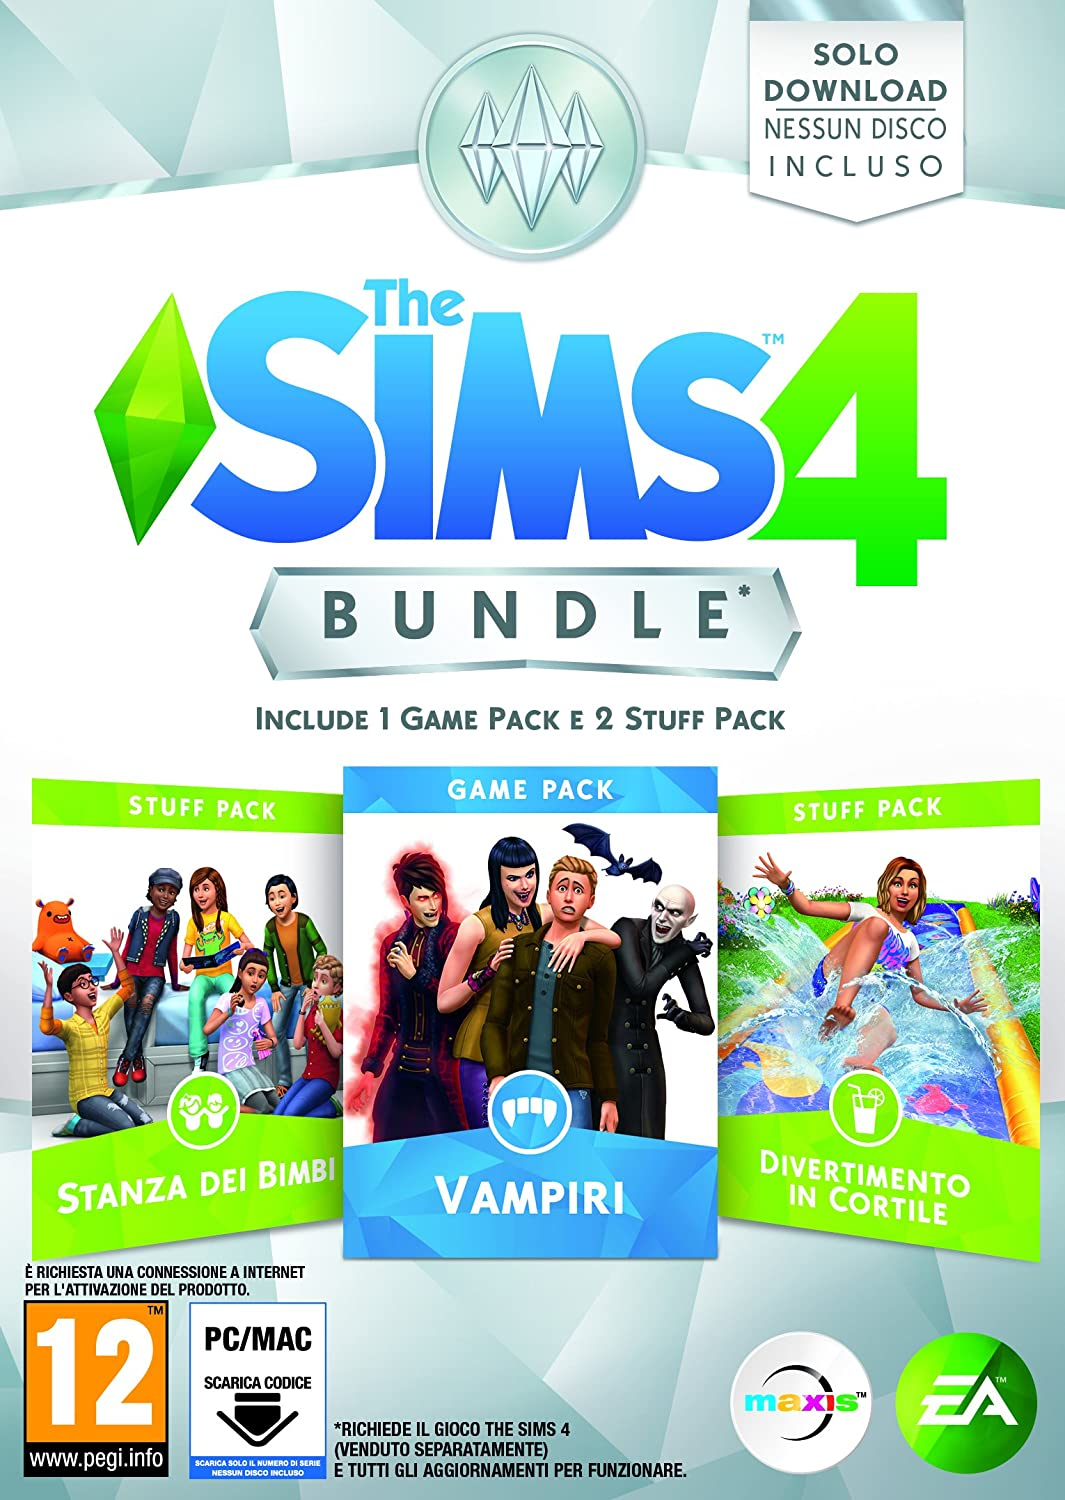 The Sims 4 Game & Stuff Pack 7: Vampiri, Stanza dei Bimbi, Divertimento in Cortile - PC [Importación italiana]: Amazon.es: Videojuegos